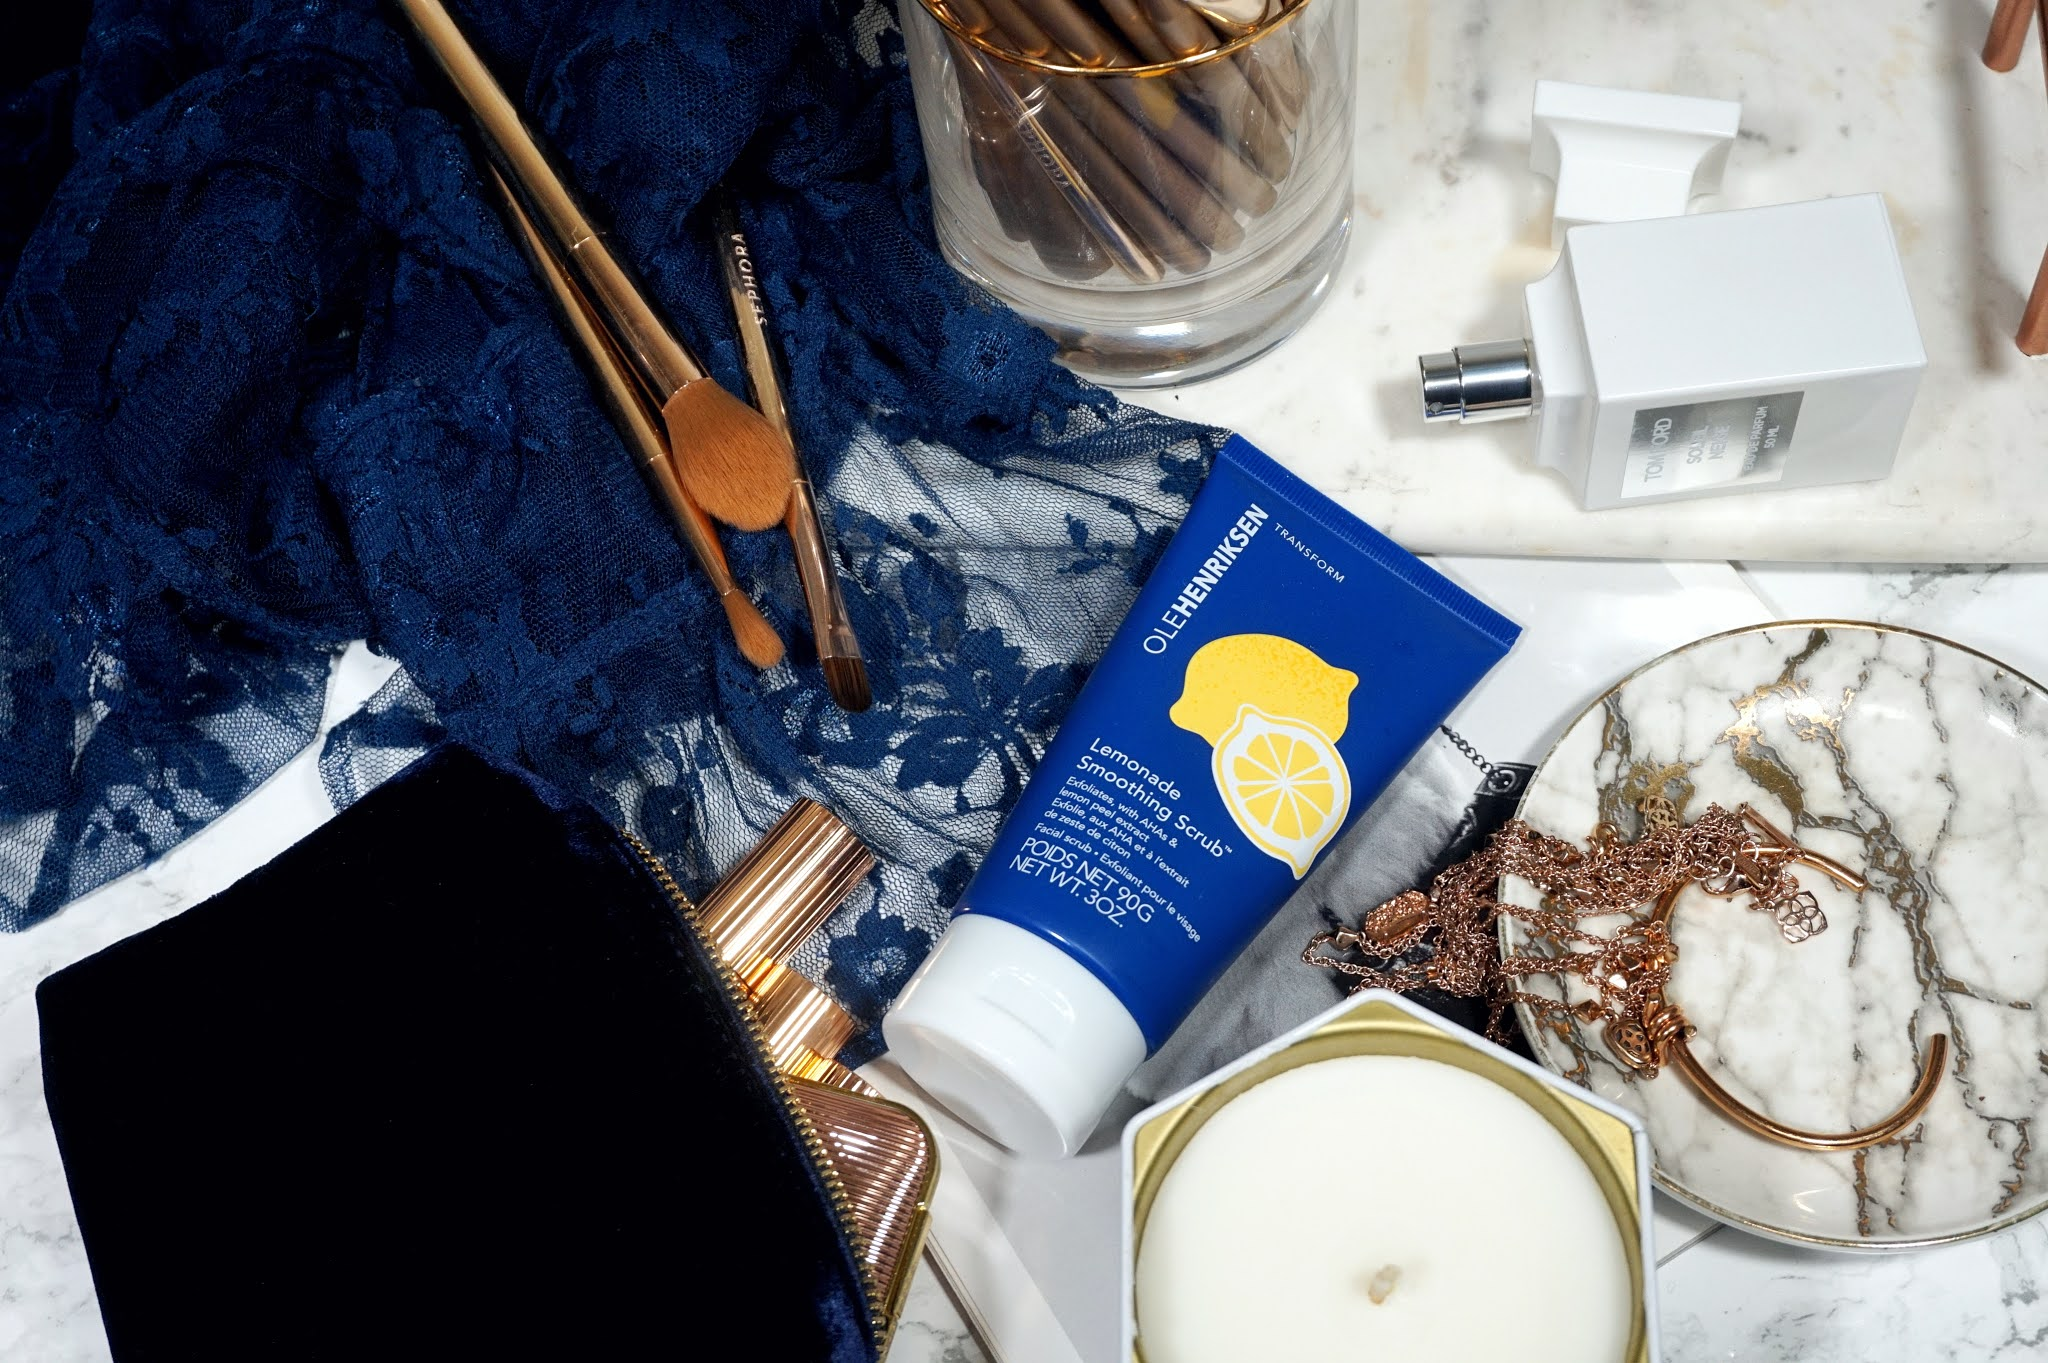 Olehenriksen Lemonade Smoothing Scrub Review